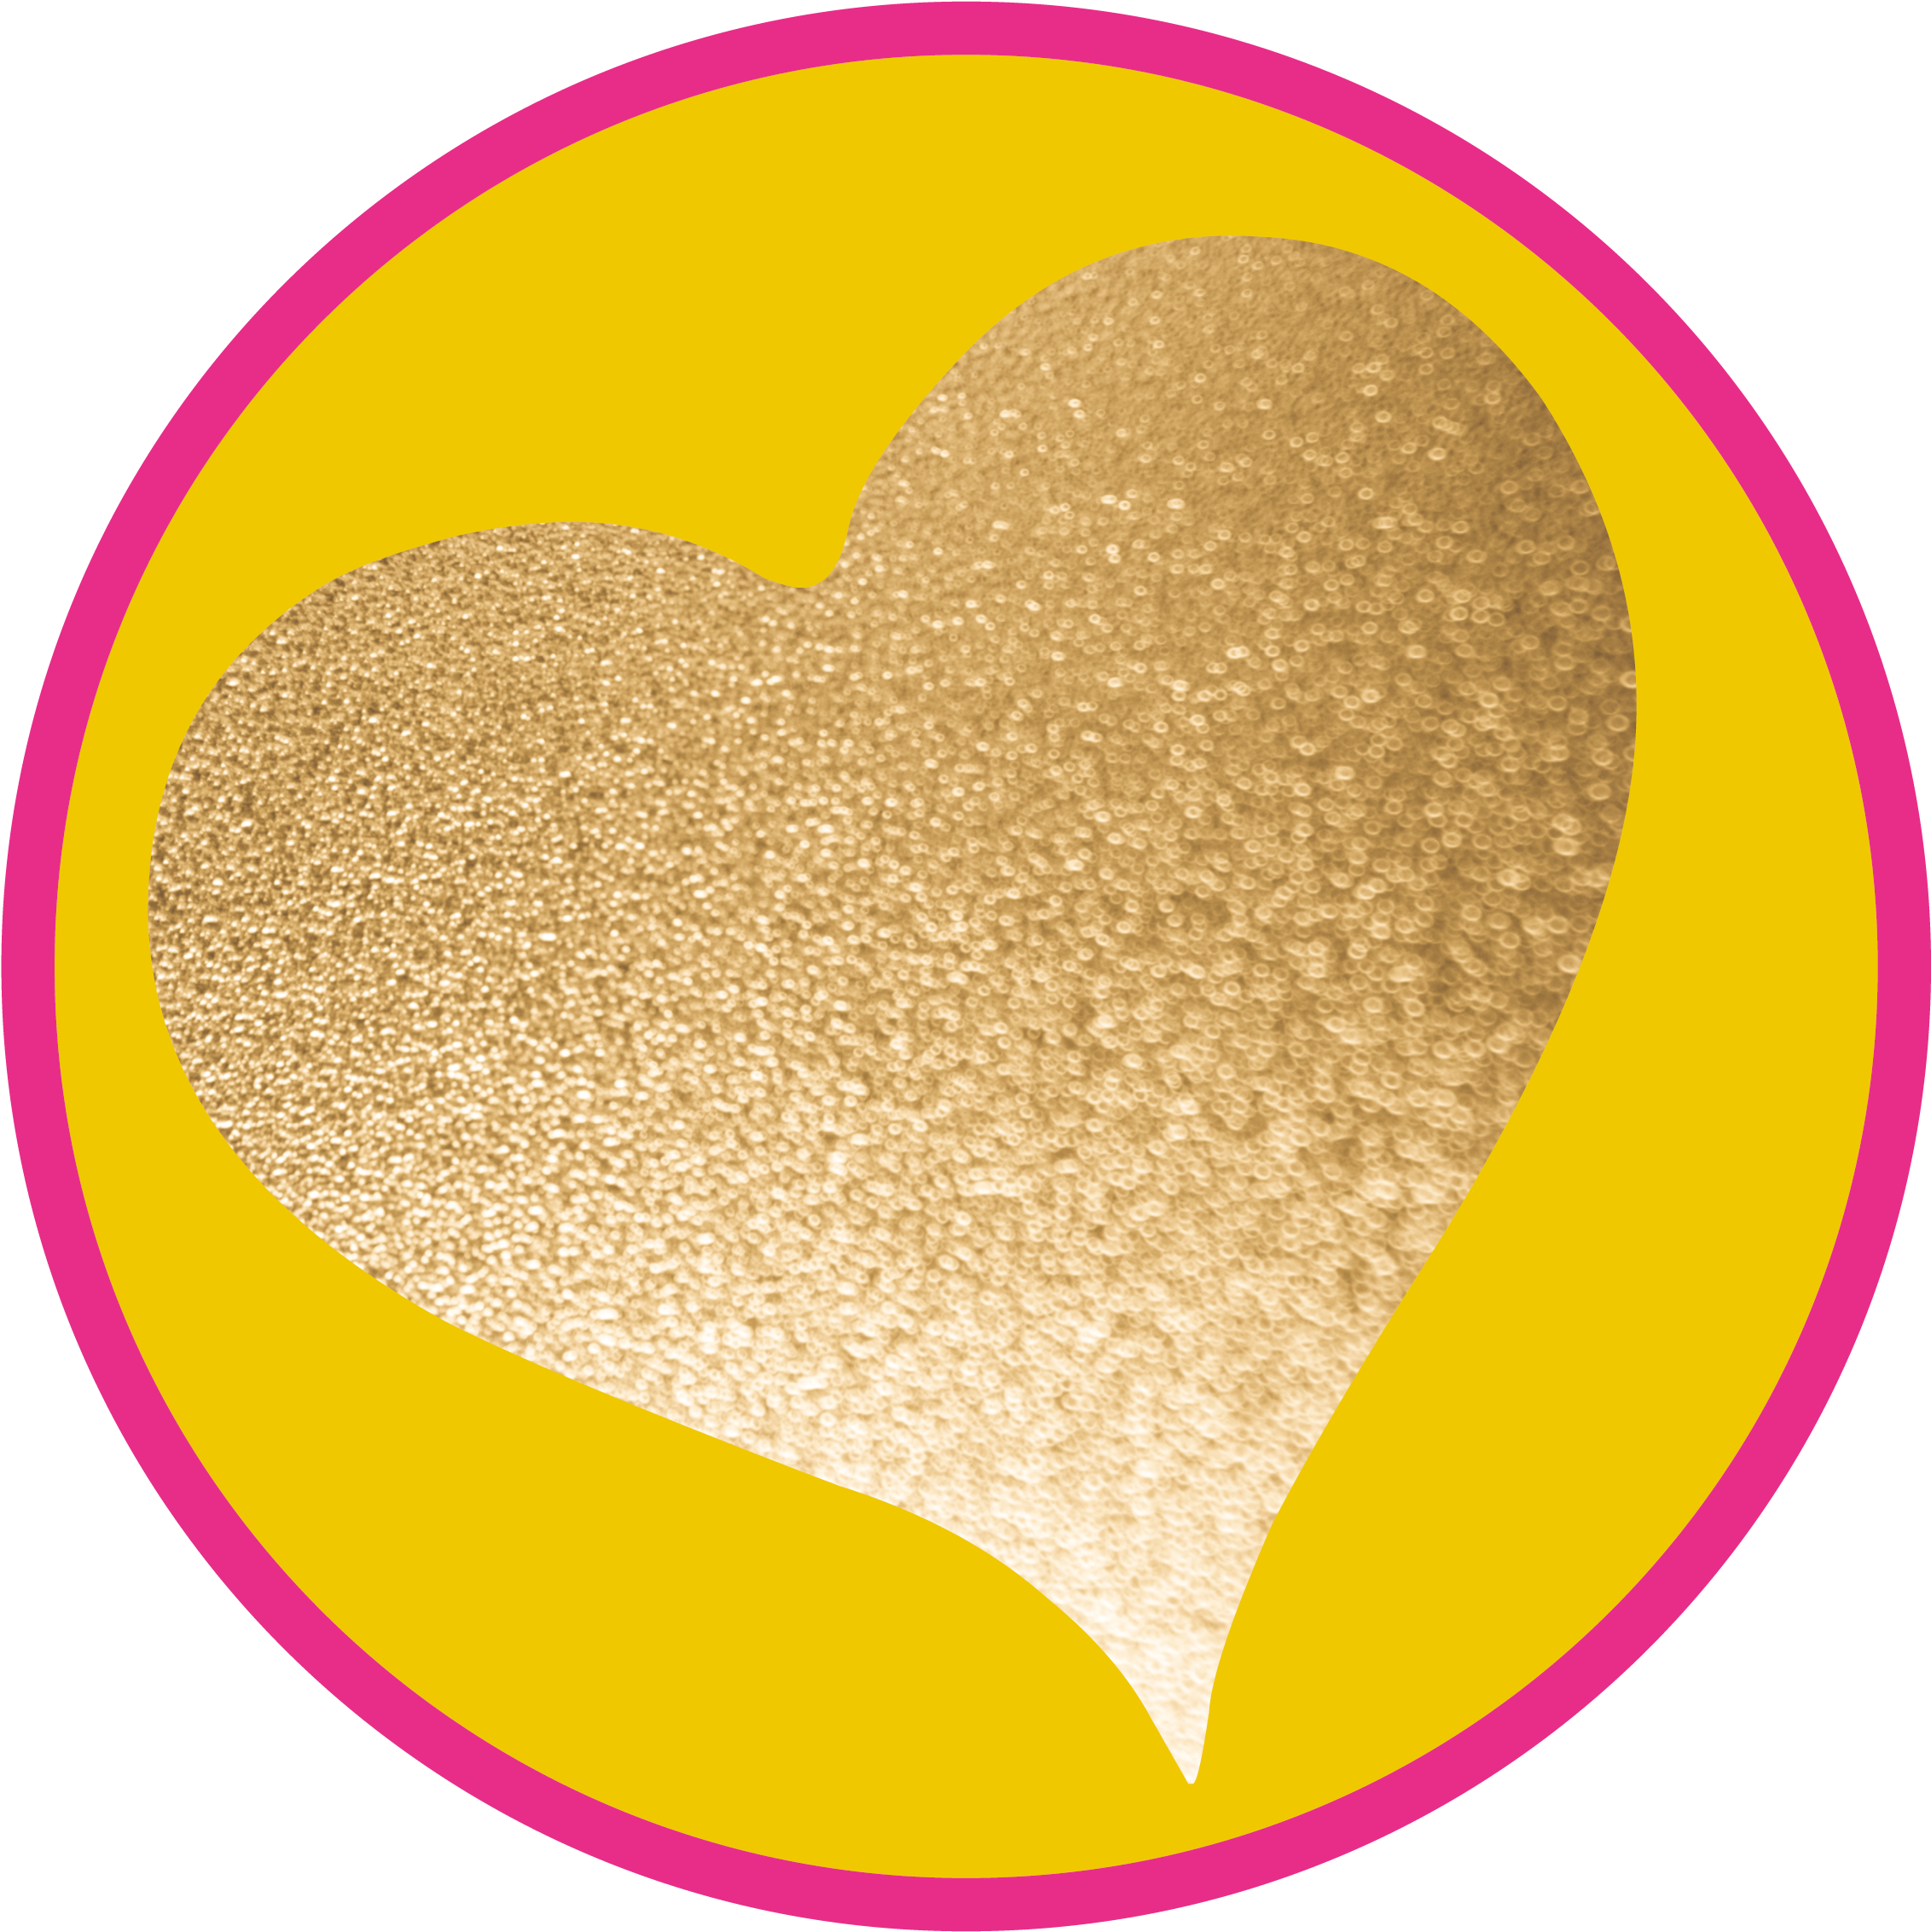 Glittery gold heart clipart graphic free stock HD Heart Of Gold Transparent PNG Image Download - Trzcacak graphic free stock